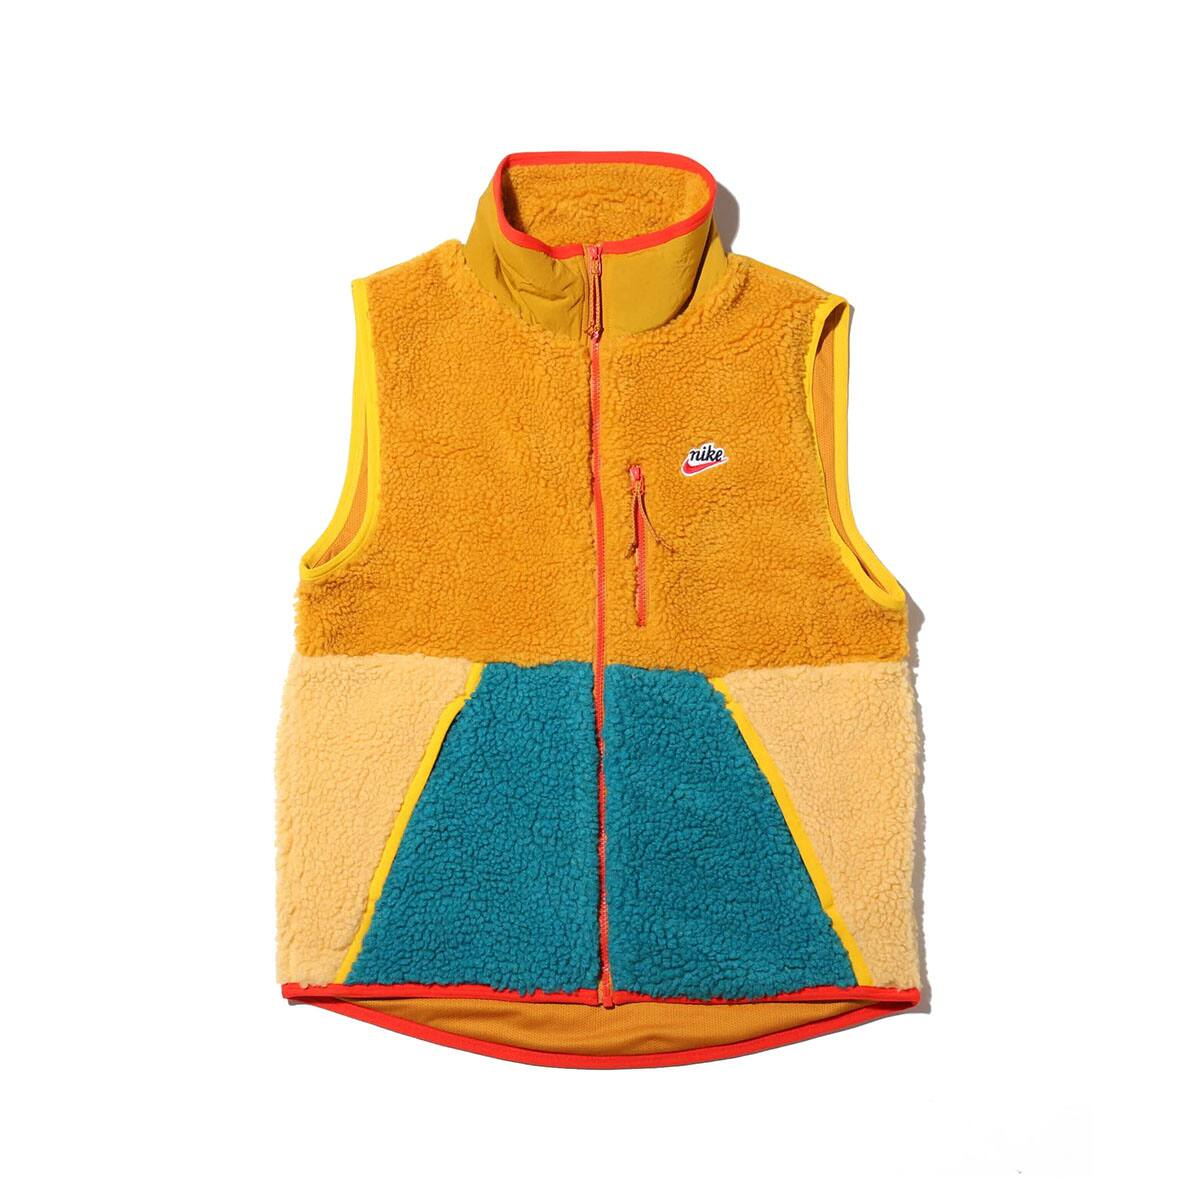 NIKE AS M NSW HE VEST WINTER GOLD SUEDE/CLUB GOLD/GEODE TEAL 19HO-S_photo_large